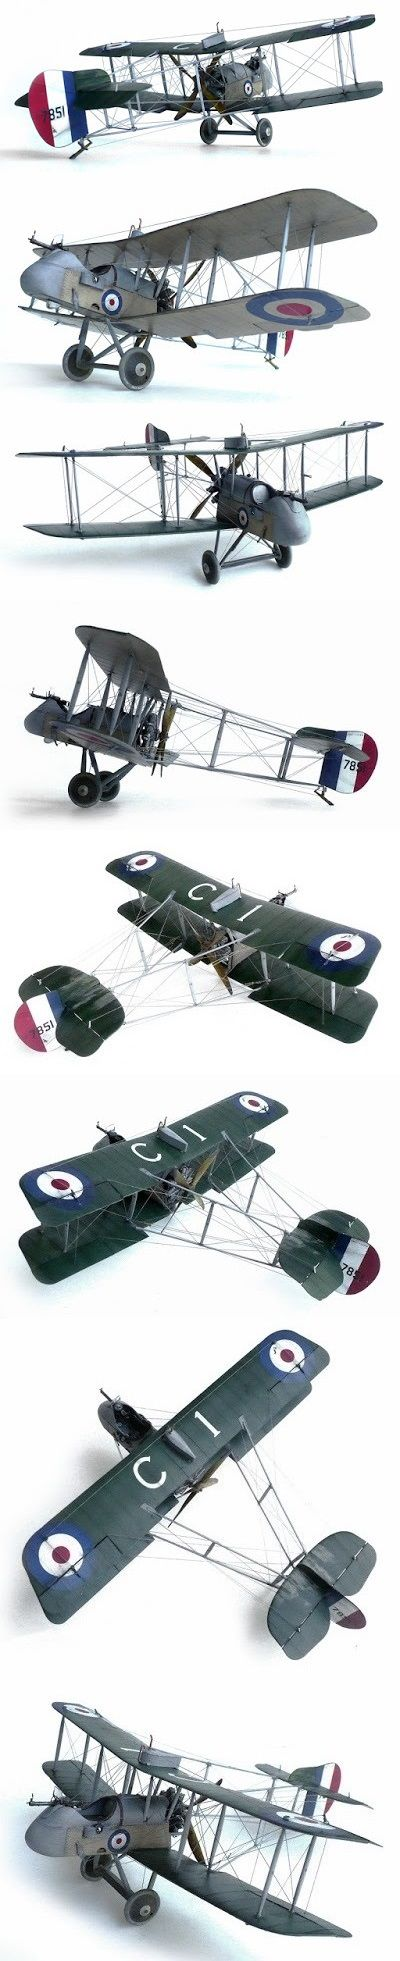 Wingnut Wings 1/32 scale Airco DH.2 fighter.